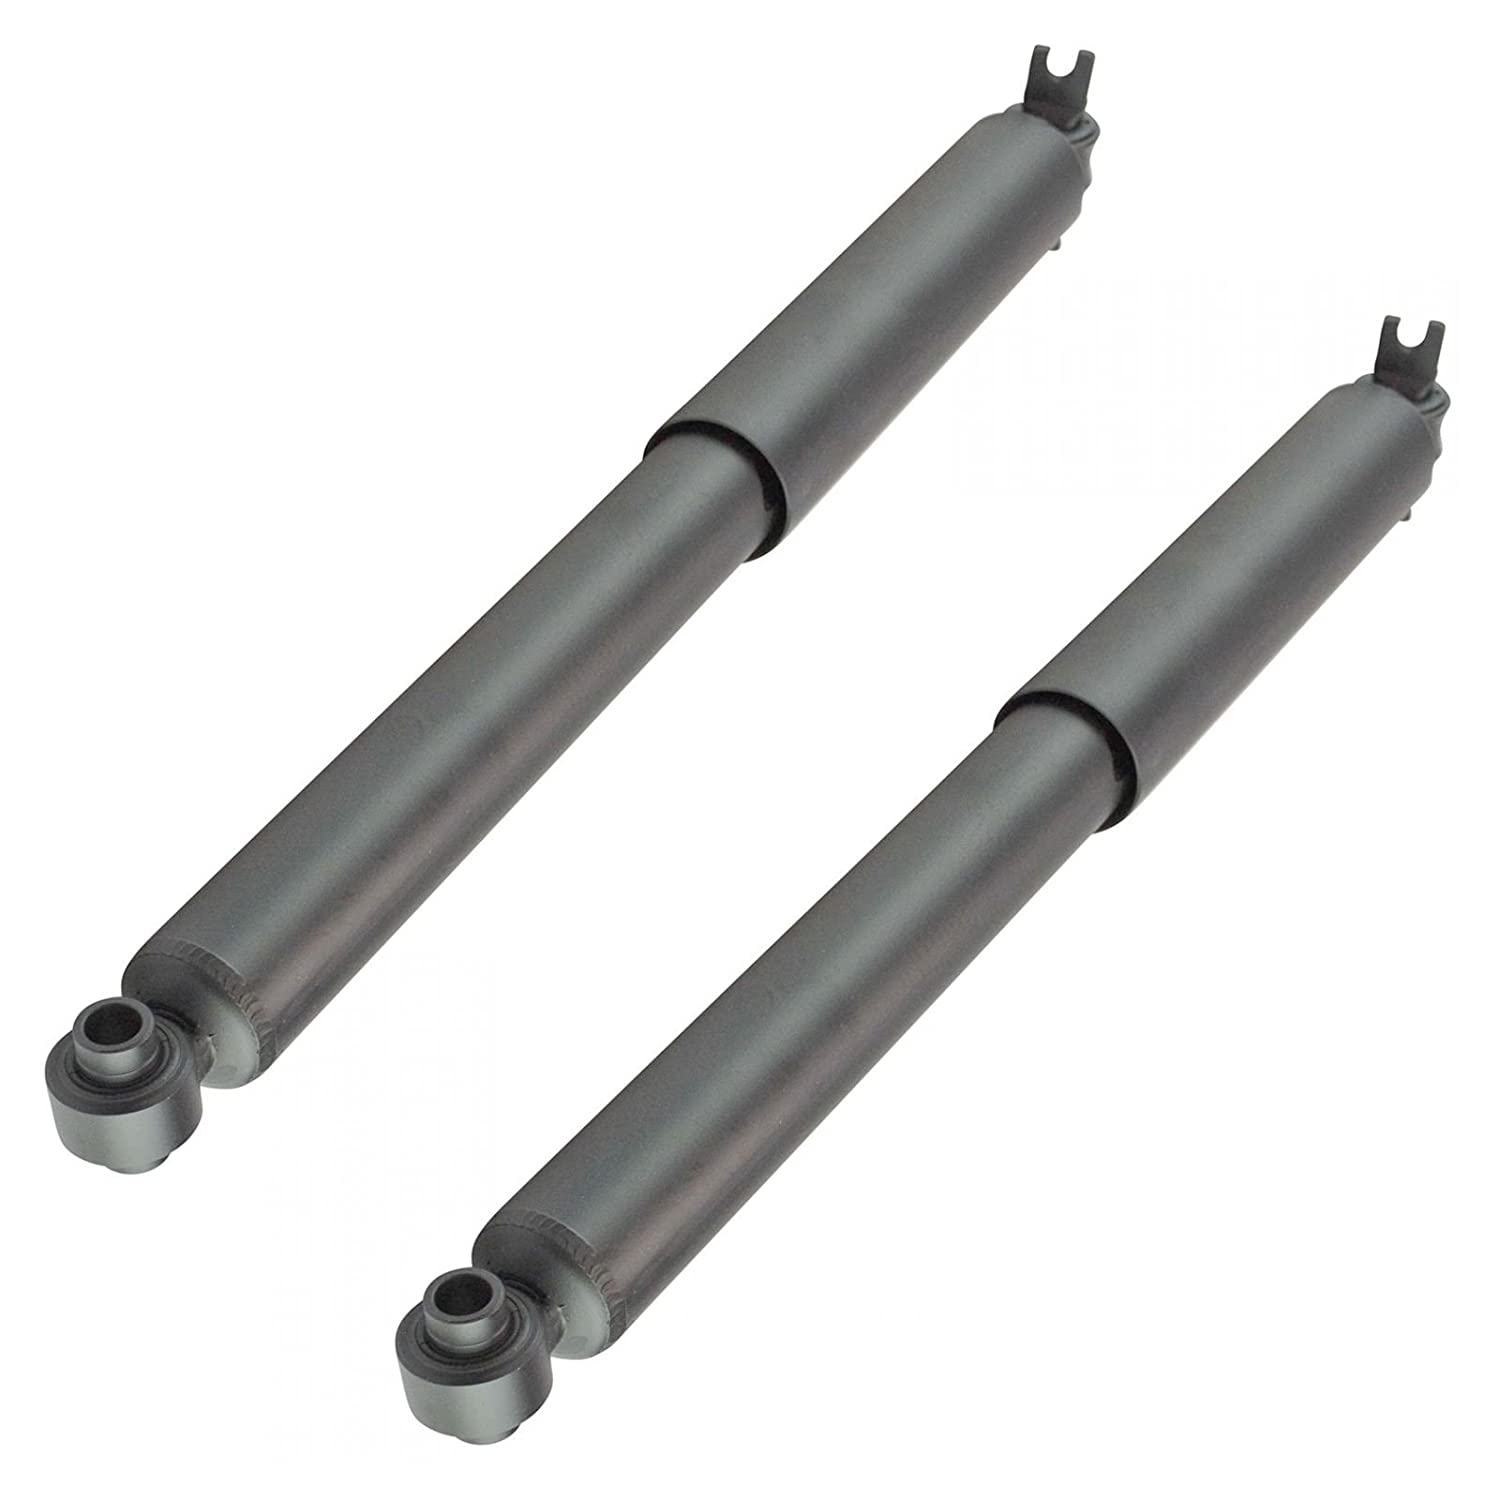 Prime Choice Auto Parts KS1231-1232 Set of 4 Shock Absorbers